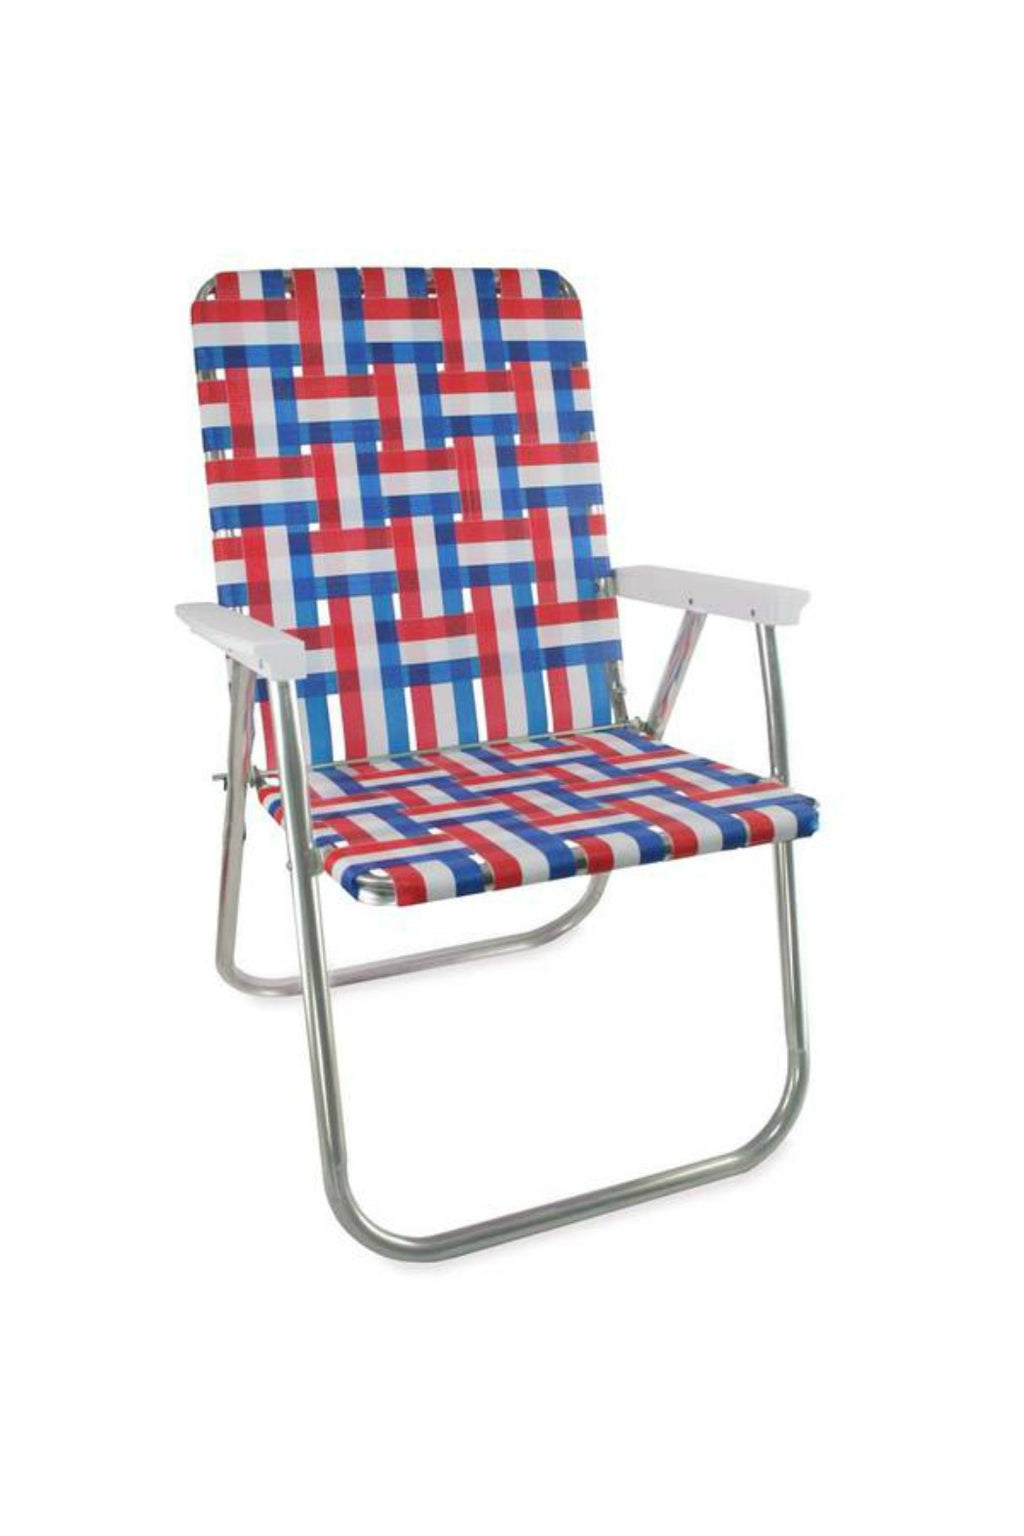 Picnic Lawn Chair - Old Glory